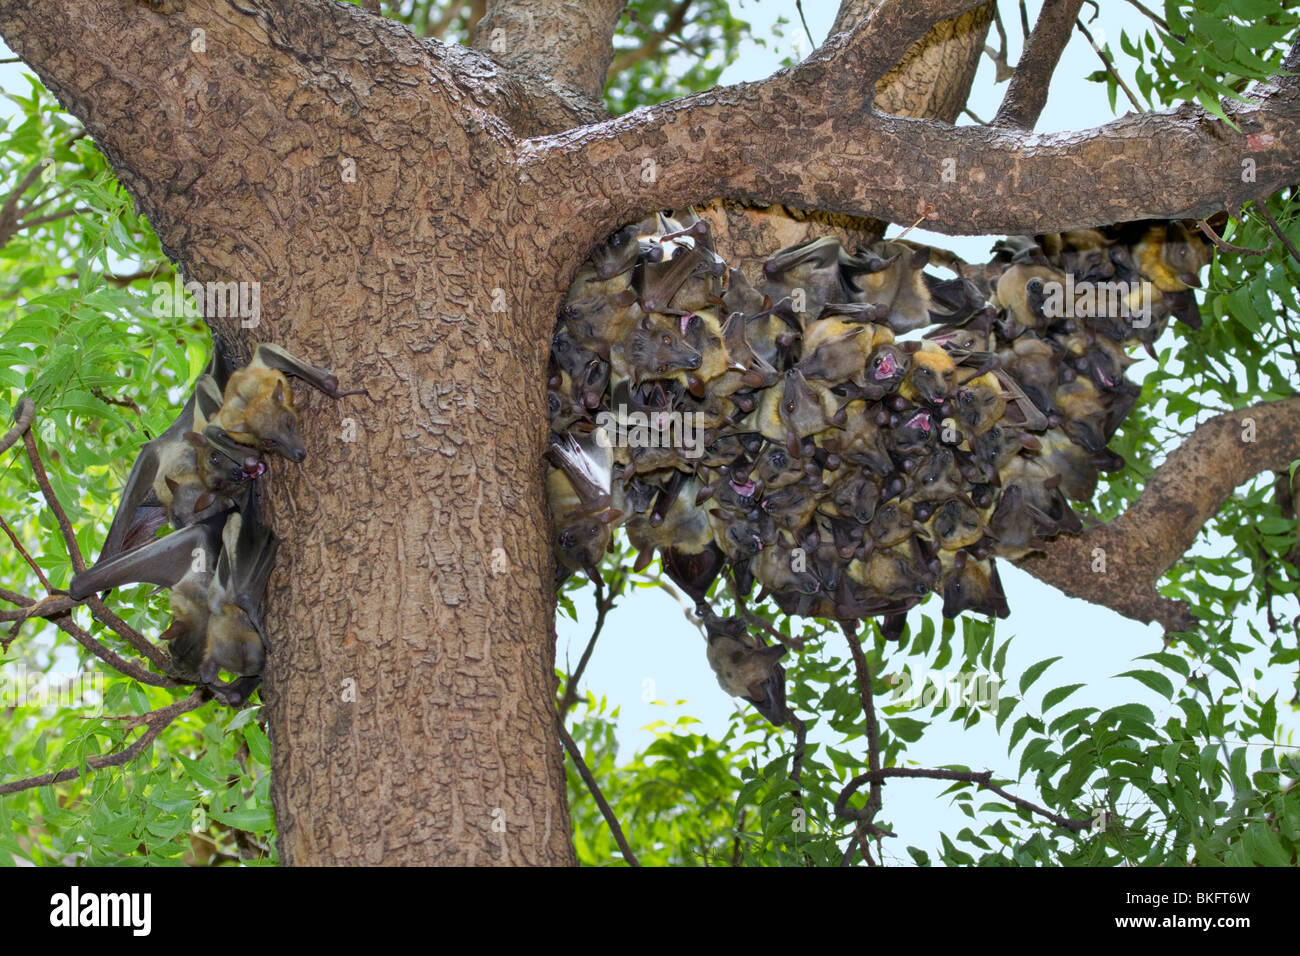 A colony of African straw-colored fruit bats (Eidolon helvum) in a tree. - Stock Image